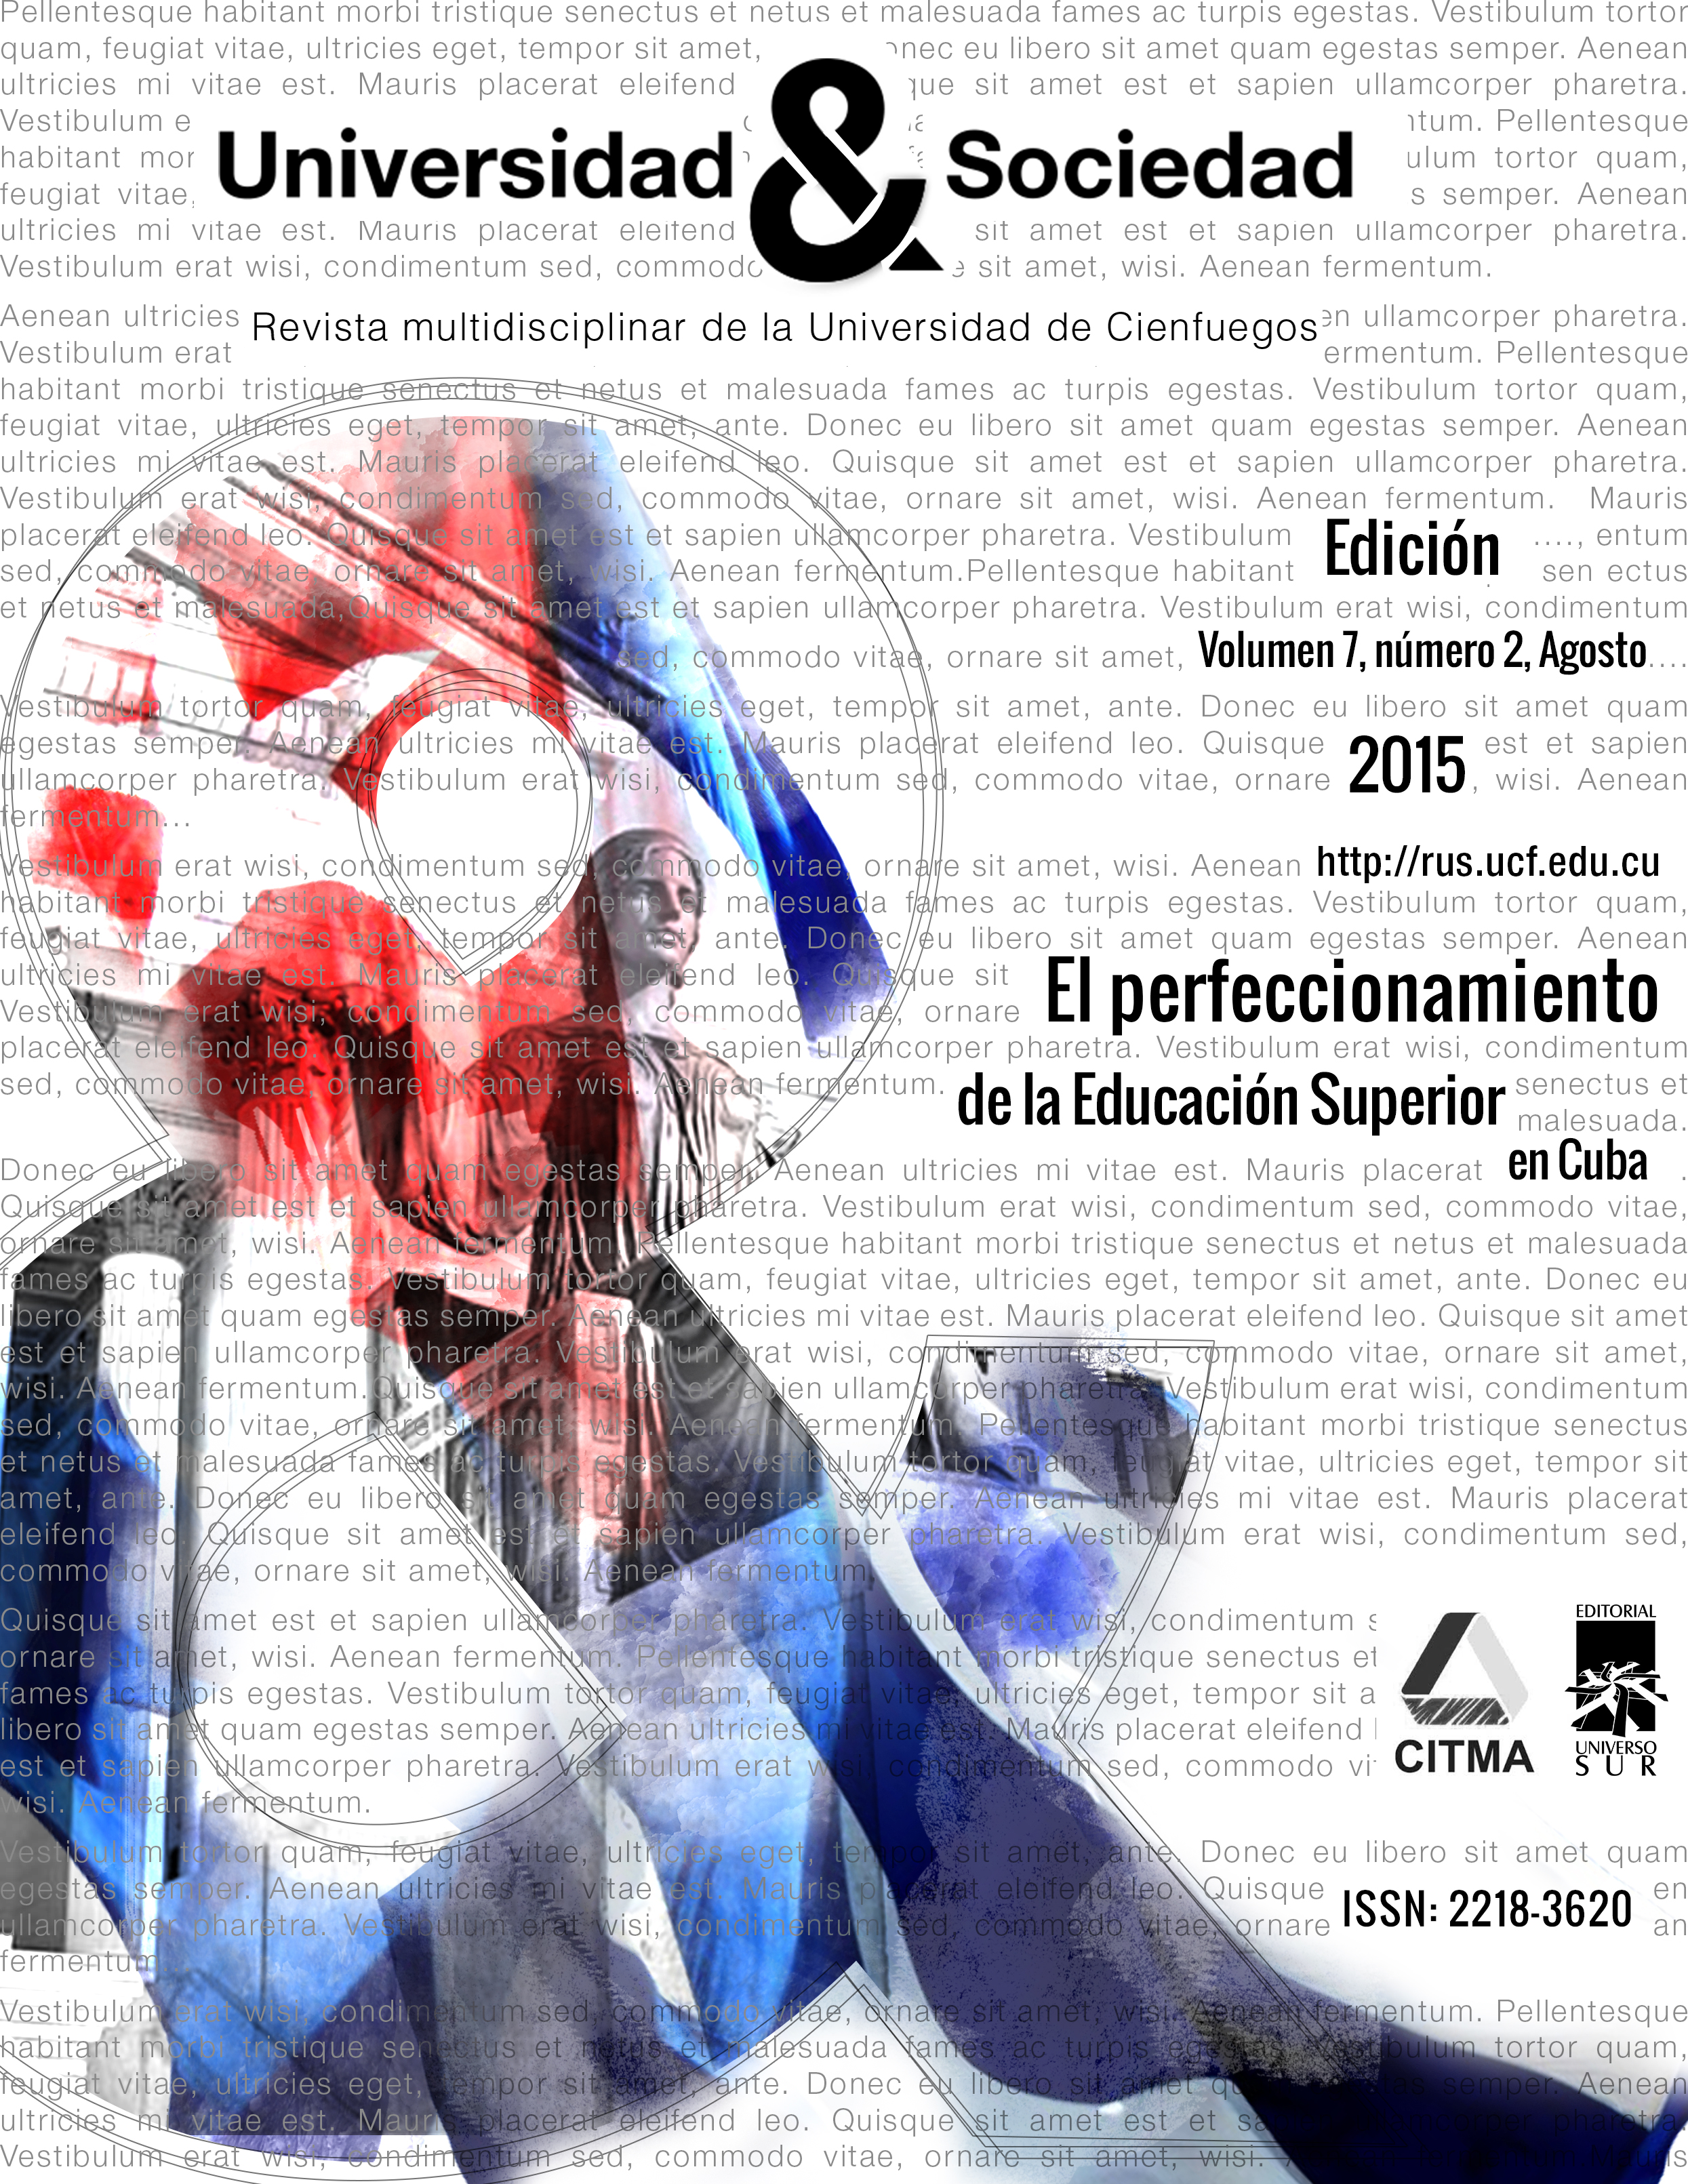 ##numeroanterior.coverPage.altText##